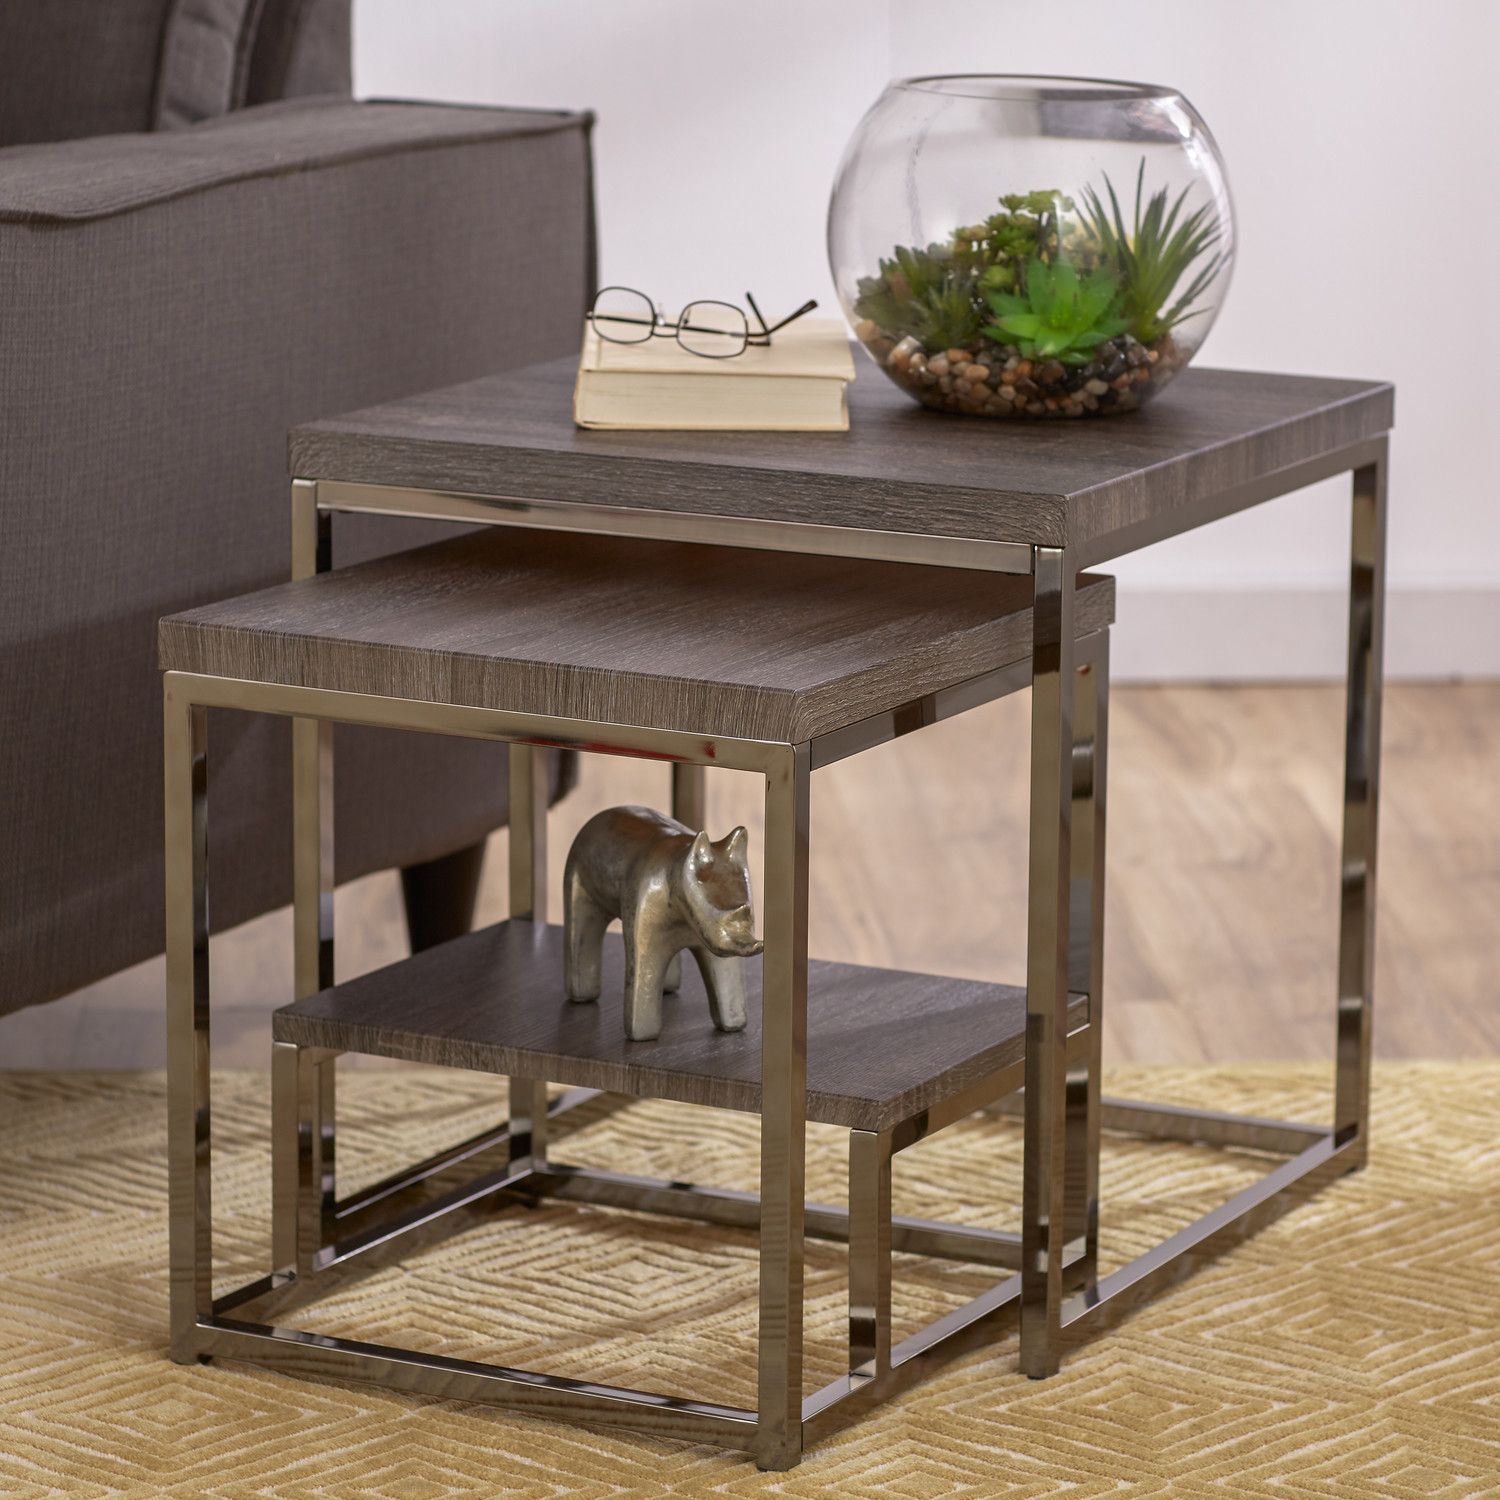 Awesome Accent Tables for Small Spaces